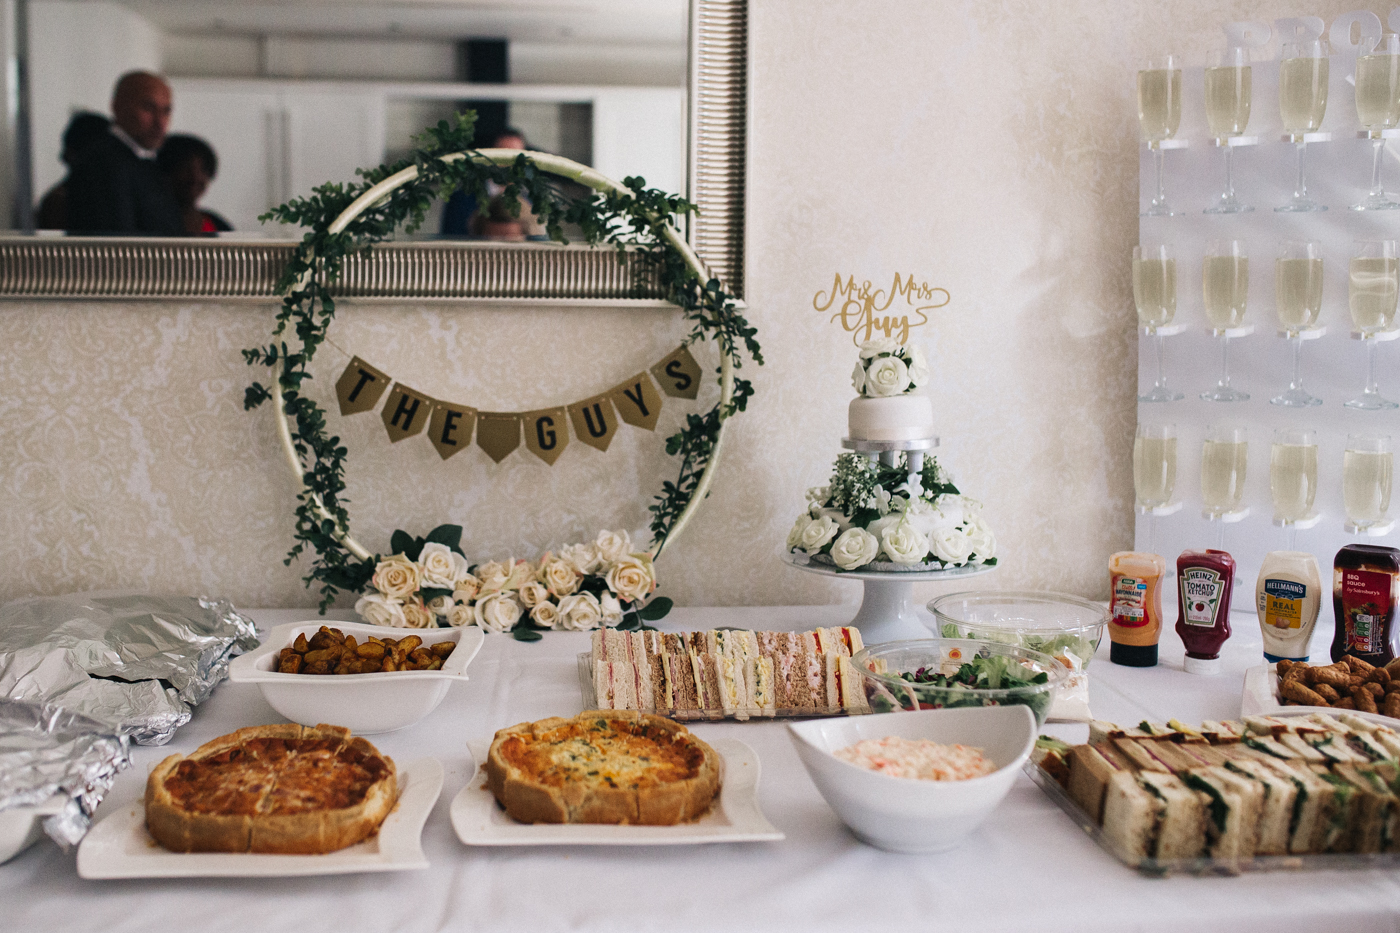 a buffet table with a wedding cake. relaxed teesside middlesbrough wedding photographer, wedding at home